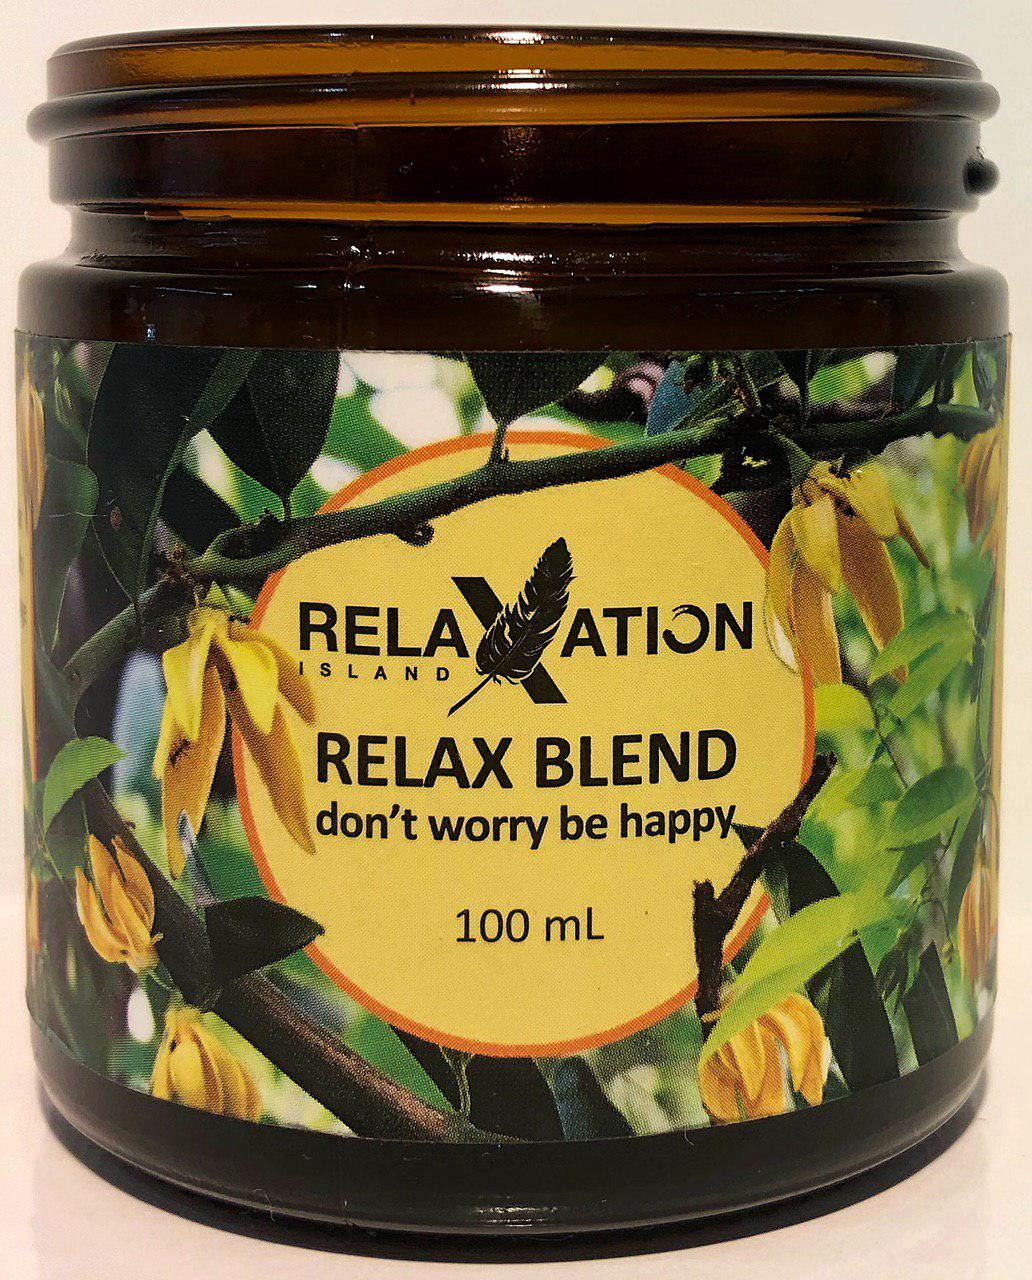 Relax Blend Jar Diffuser 100ml-Relaxation Island®